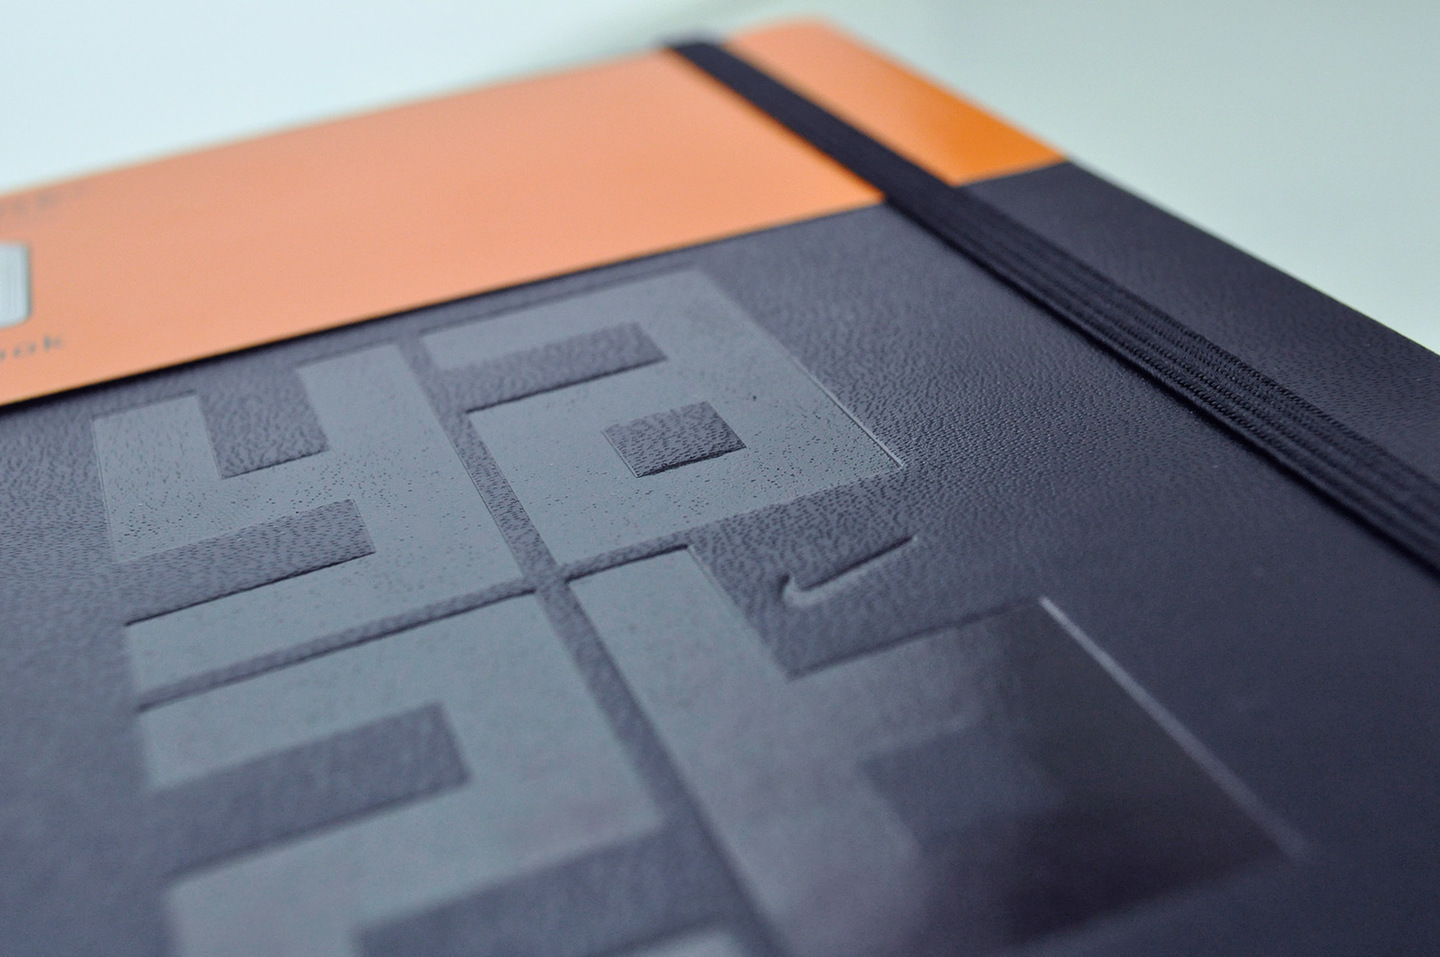 Fine Print Portfolio Image of Moleskin Book with Blind Deboss Cover